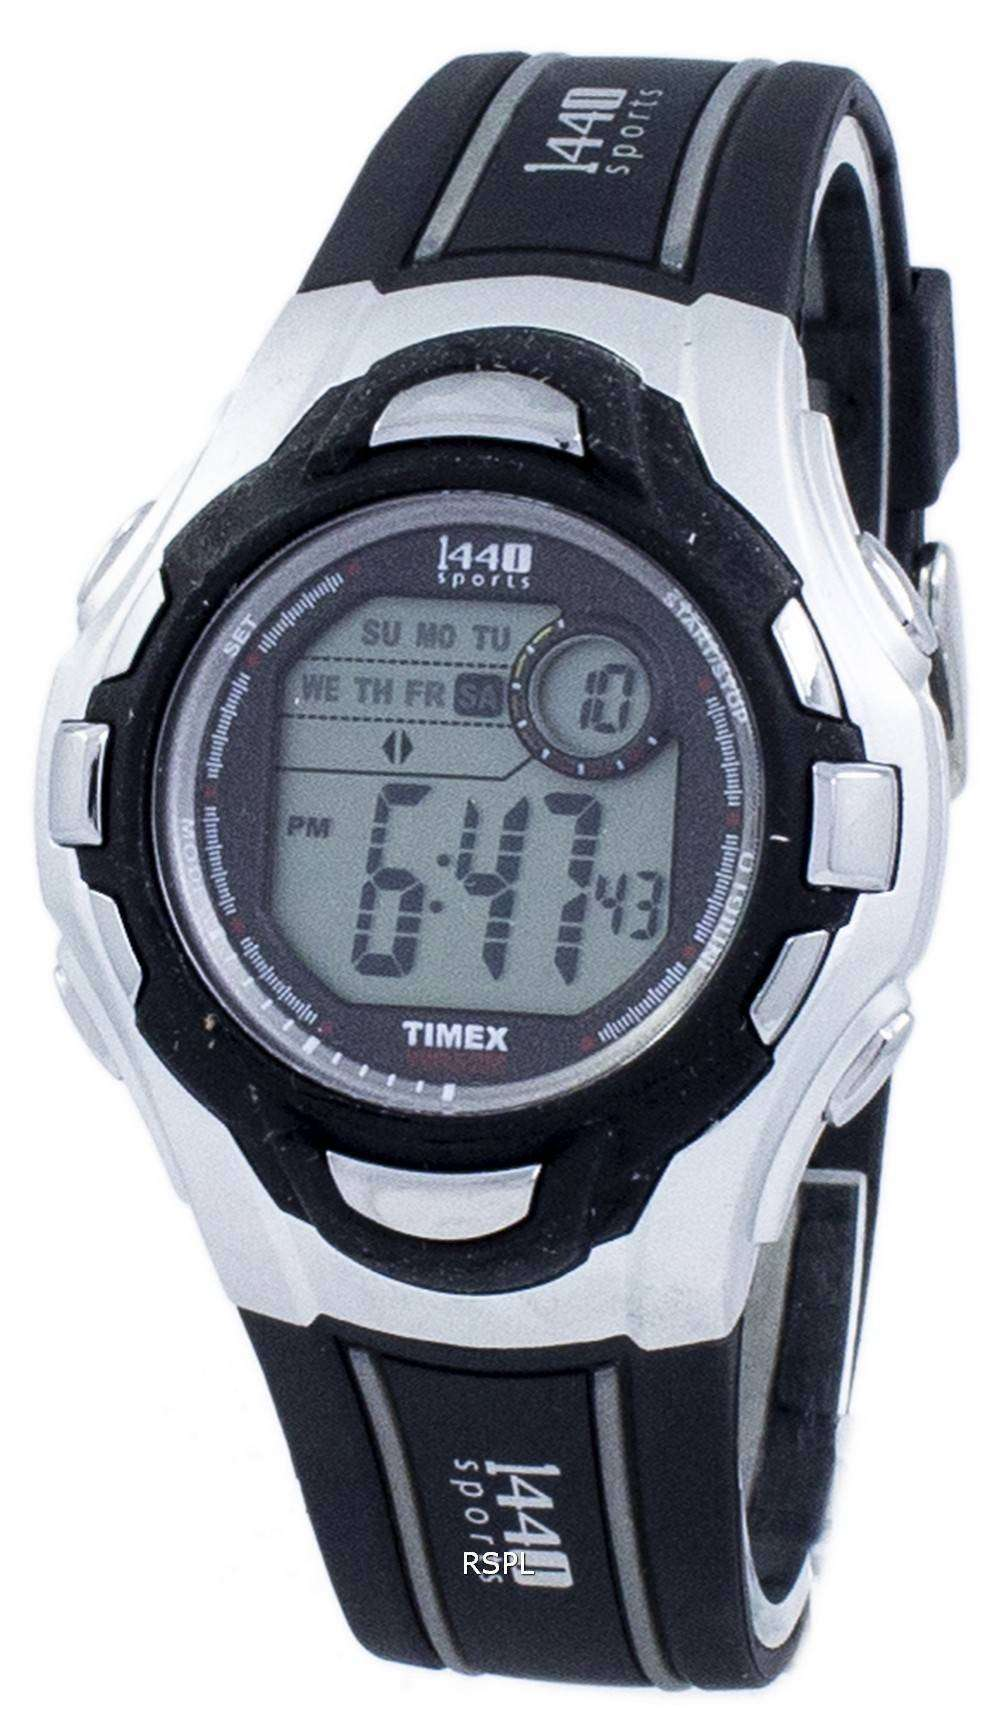 c2cb8b374 Timex 1440 Sports Indiglo Digital T5H091 Men's Watch